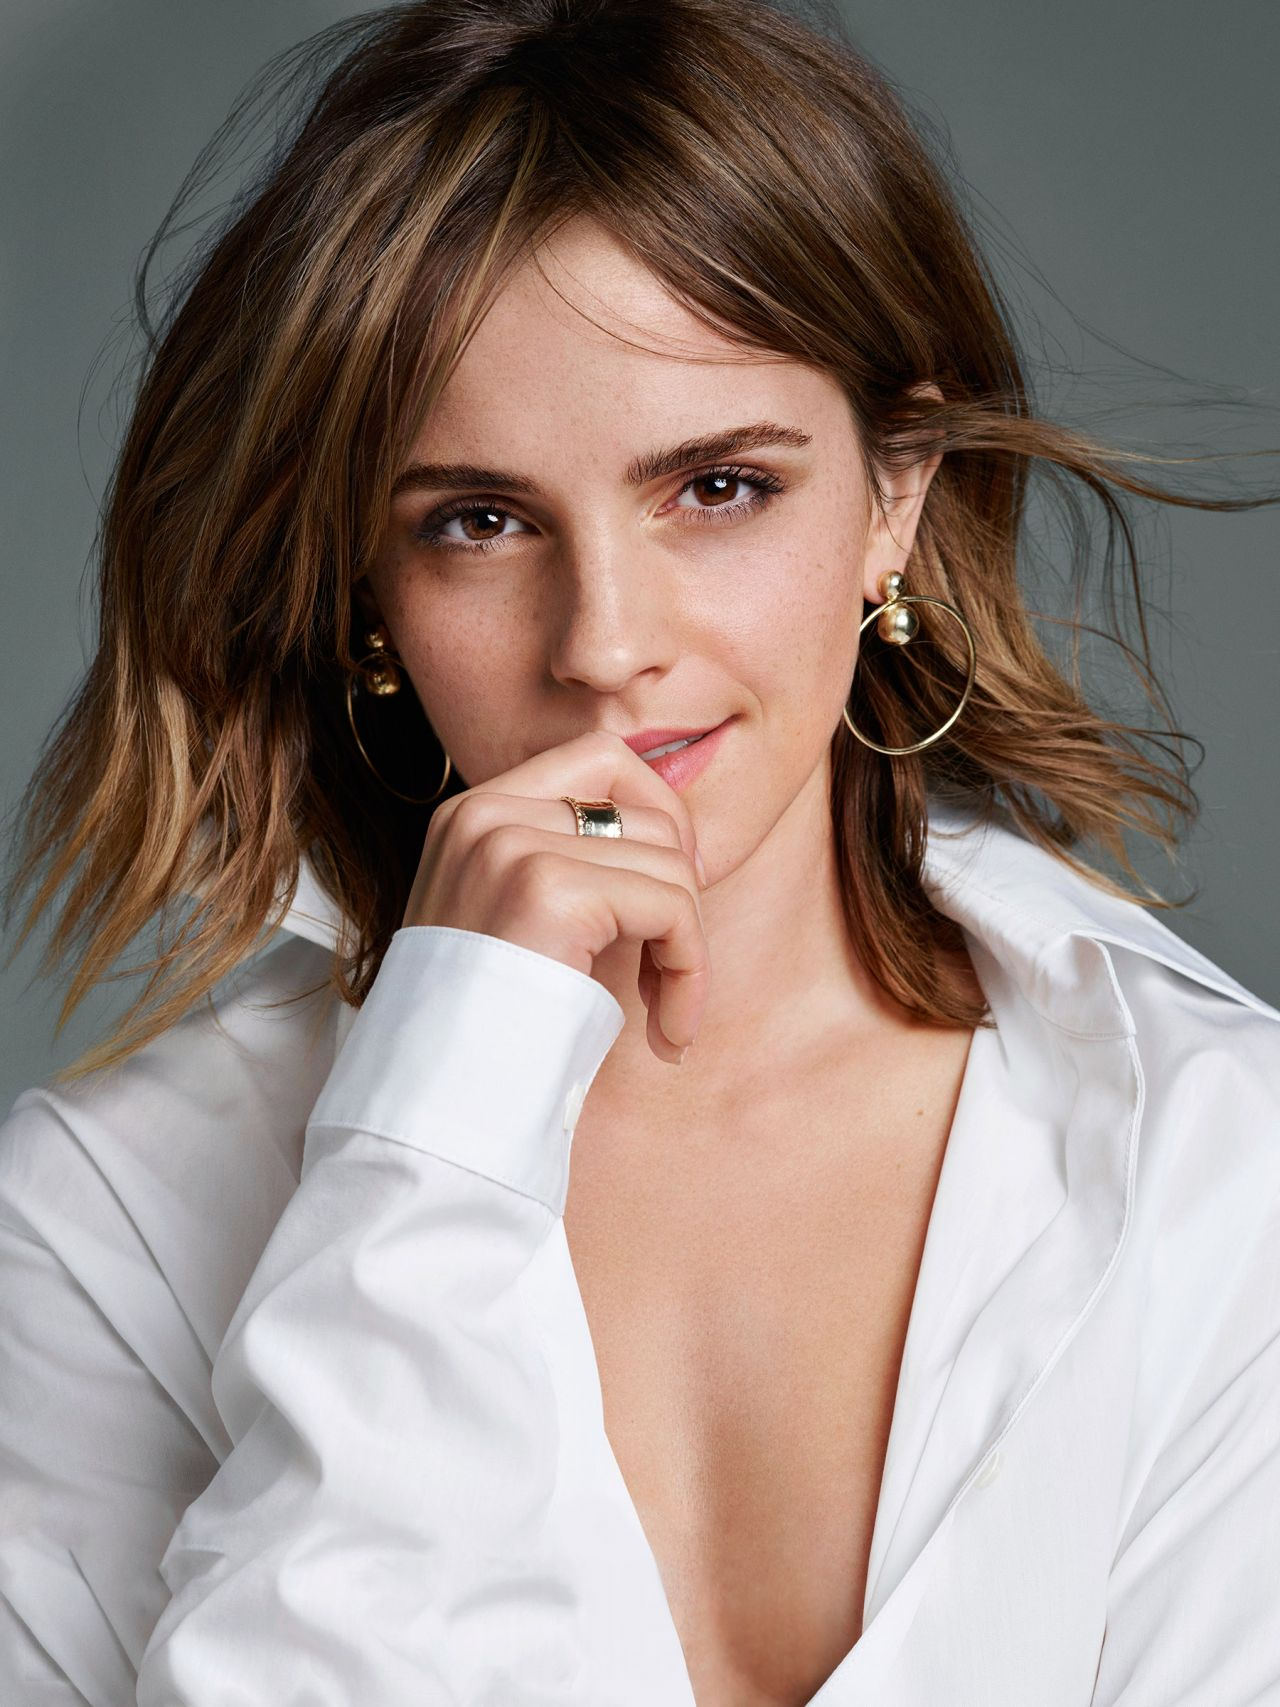 Emma Watson Photoshoot February 2017